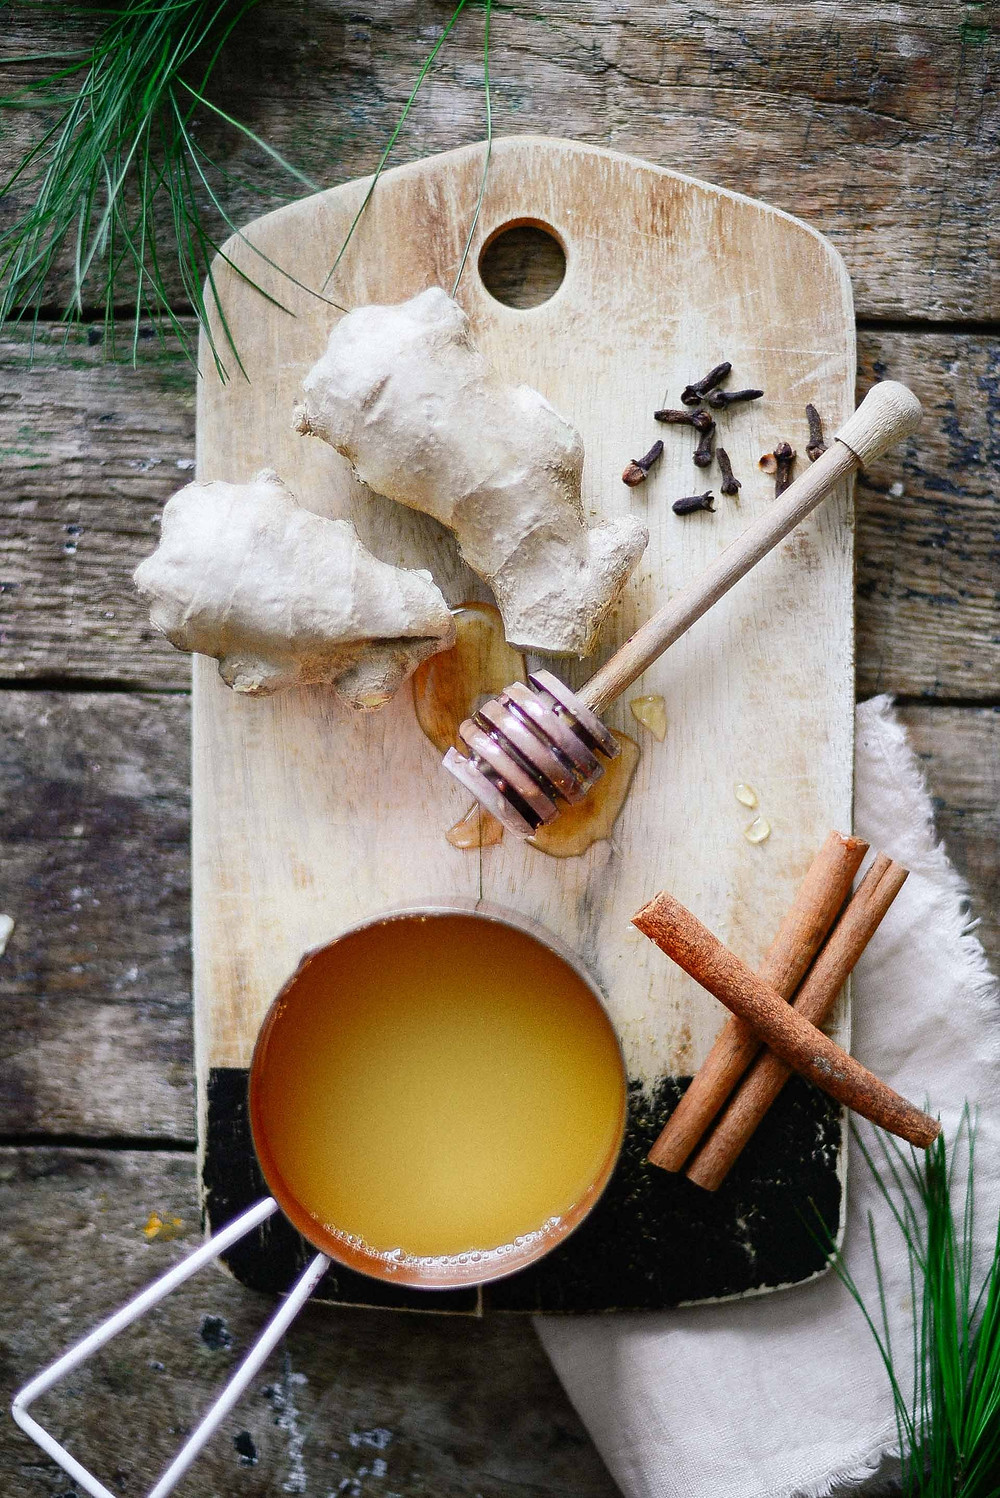 cutting board, rustic, pineapple, ginger, honey, cinnamon sticks, warm winter drink, black pepper